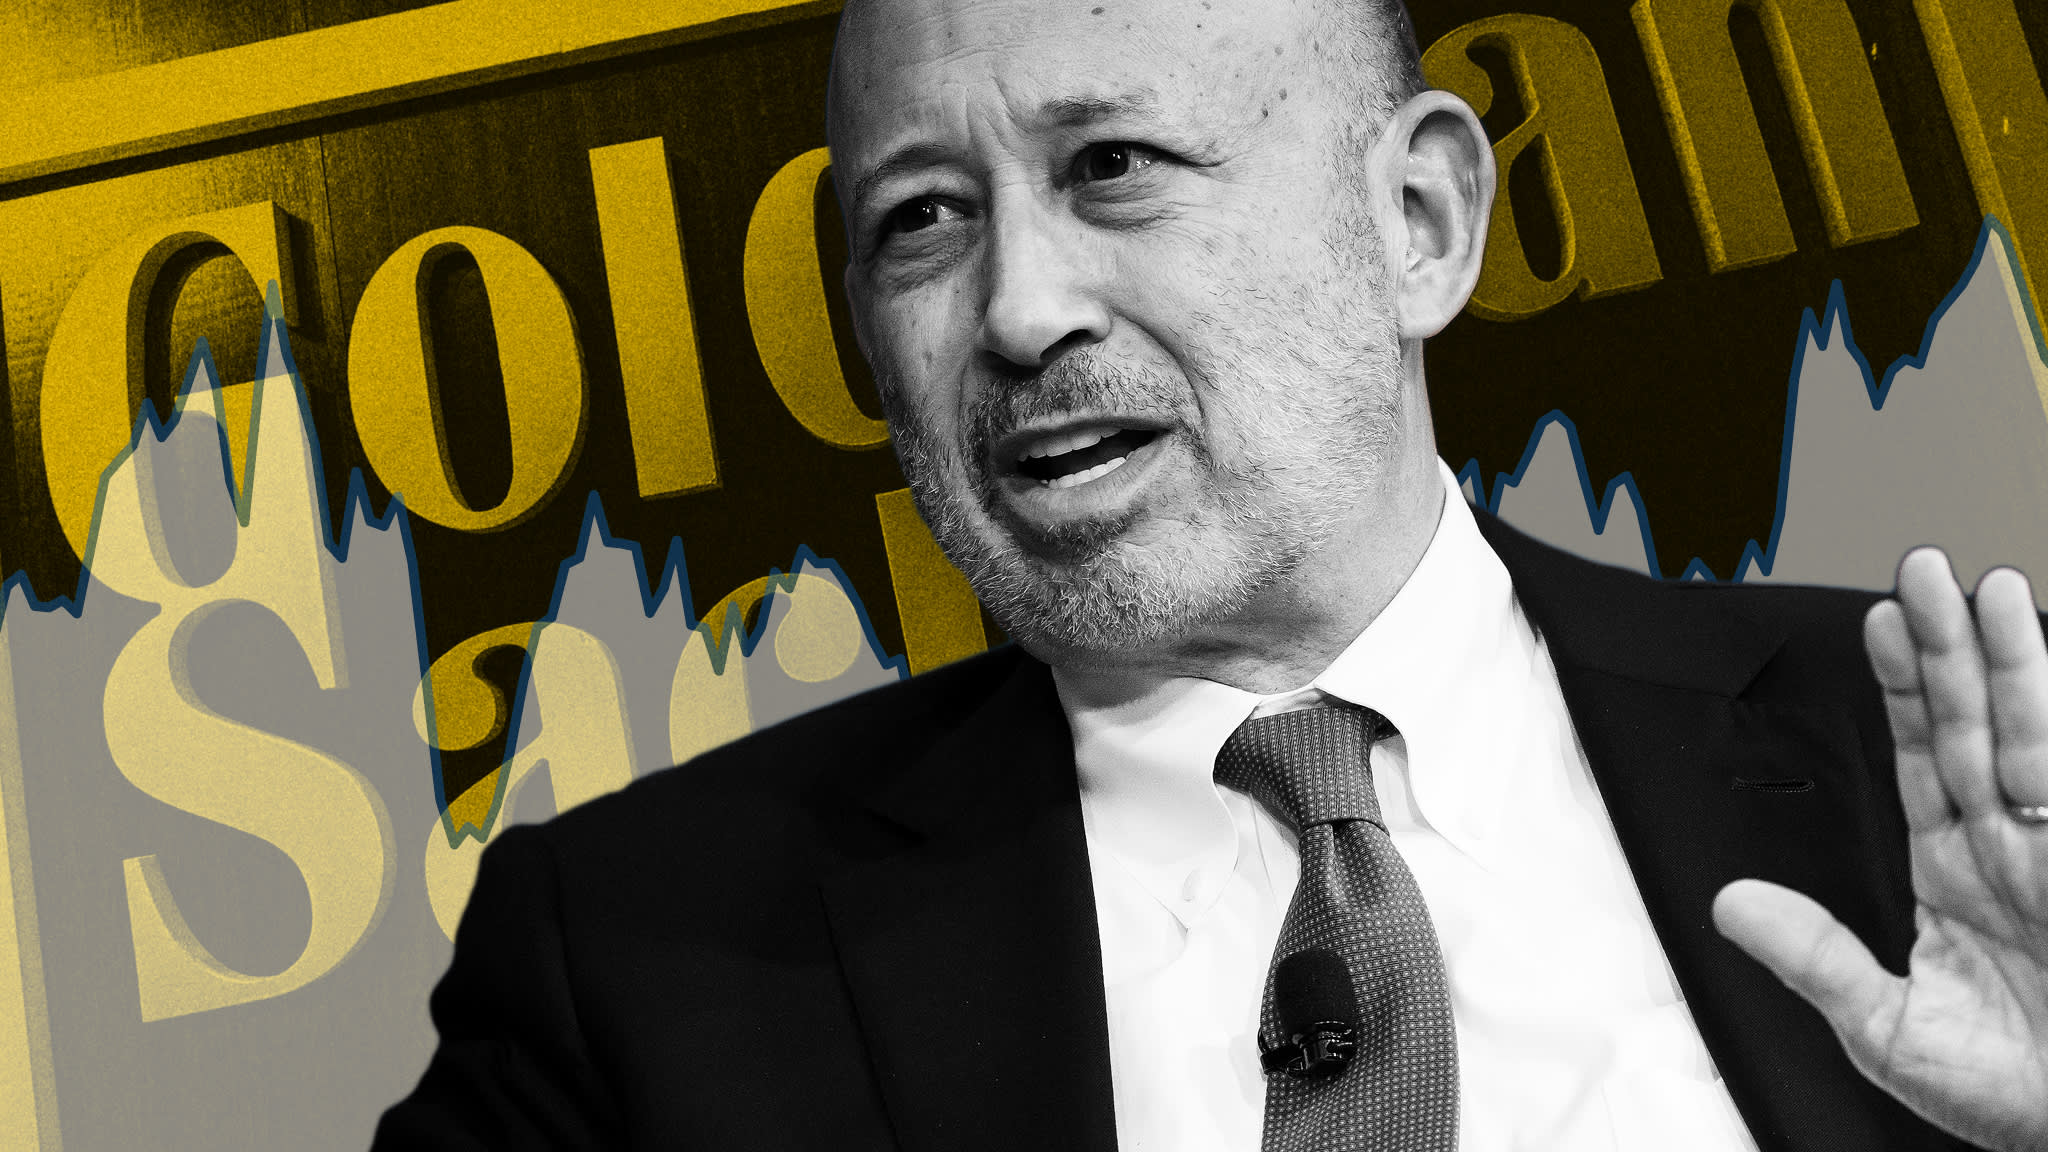 Goldman's cool crisis commander finally bows out